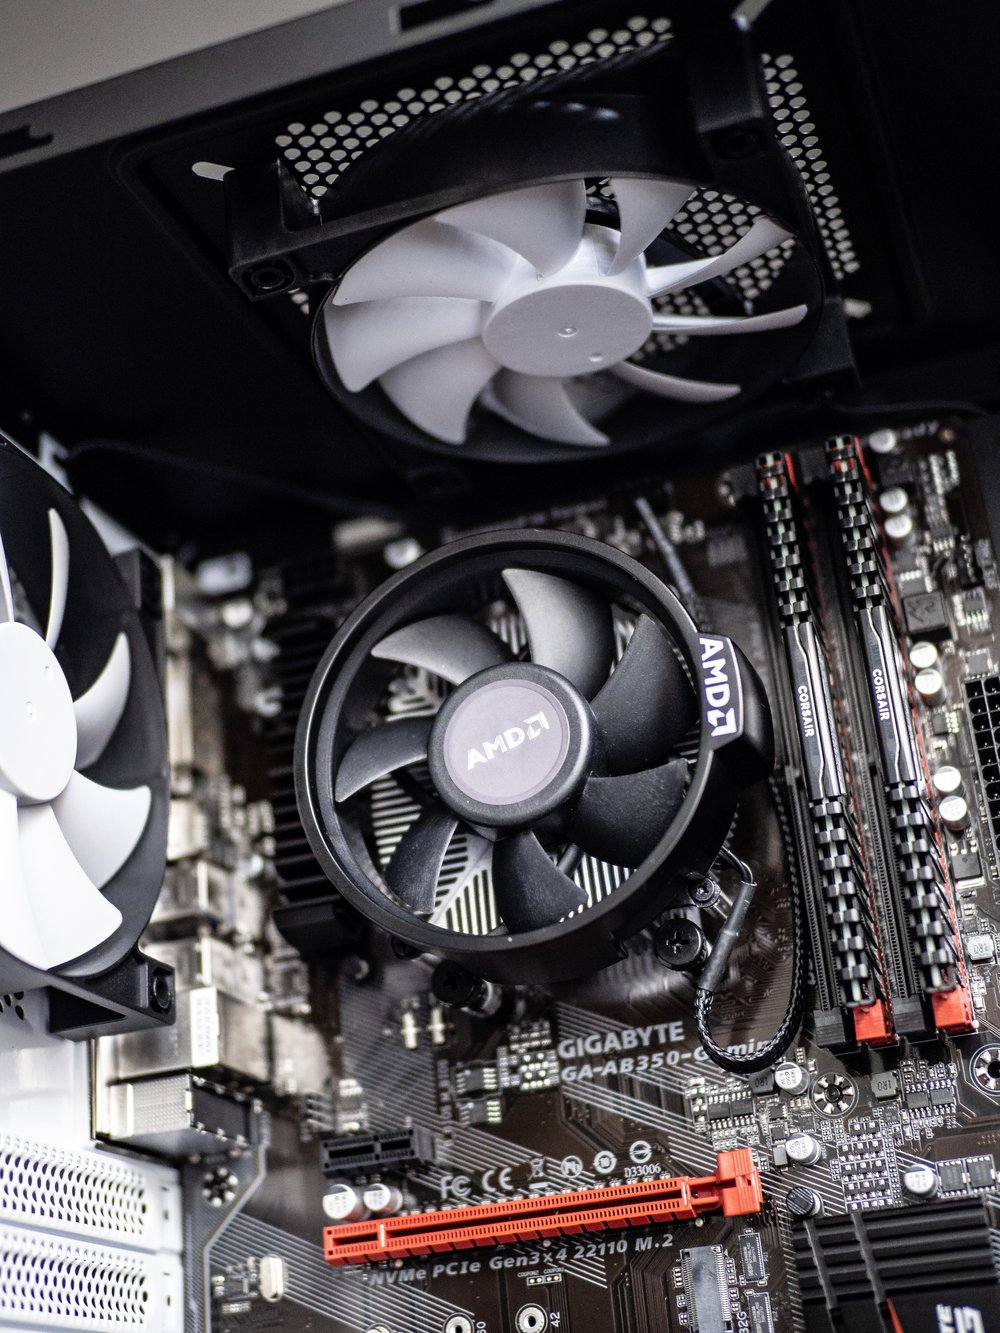 Gaming PC Build Gigabyte AB350 Motherboard Cooler Fan Fans NZXT White Case